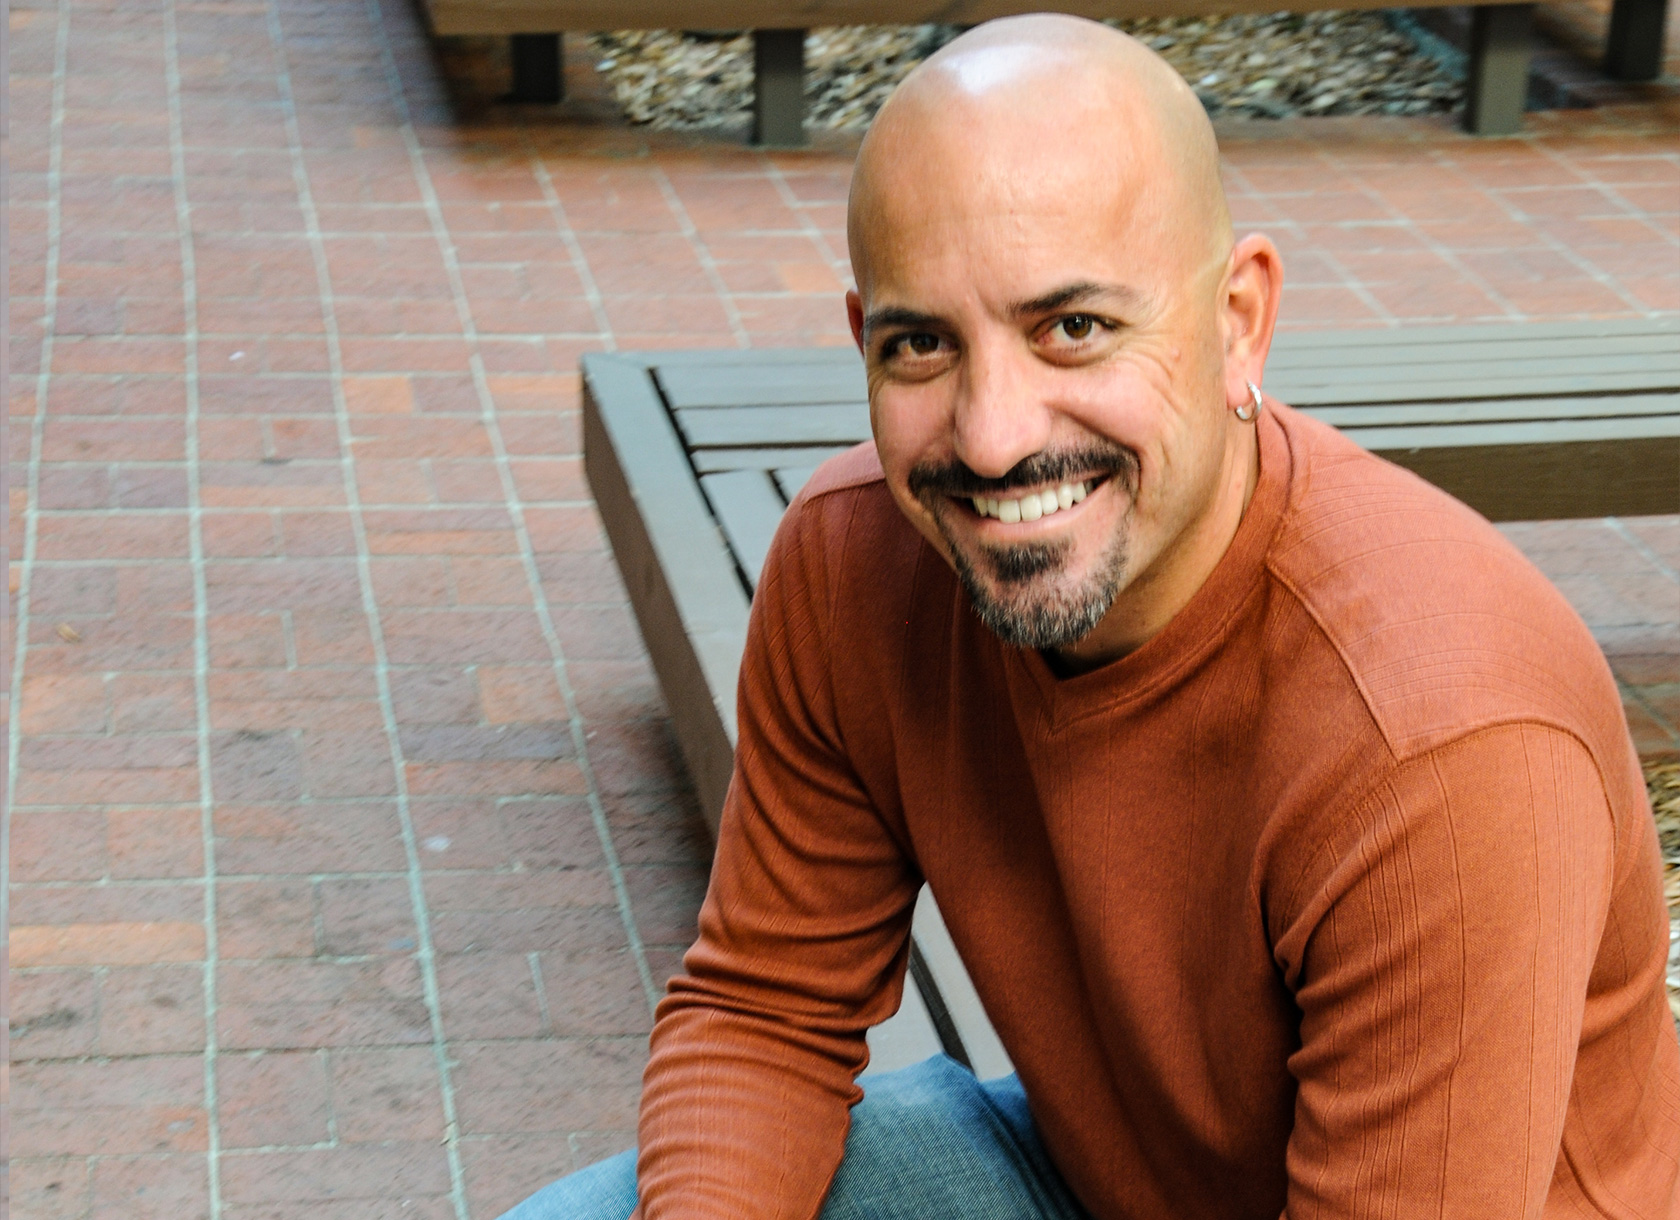 A bald, bearded man in an orange sweater and jeans smiles at the camera from a seated position